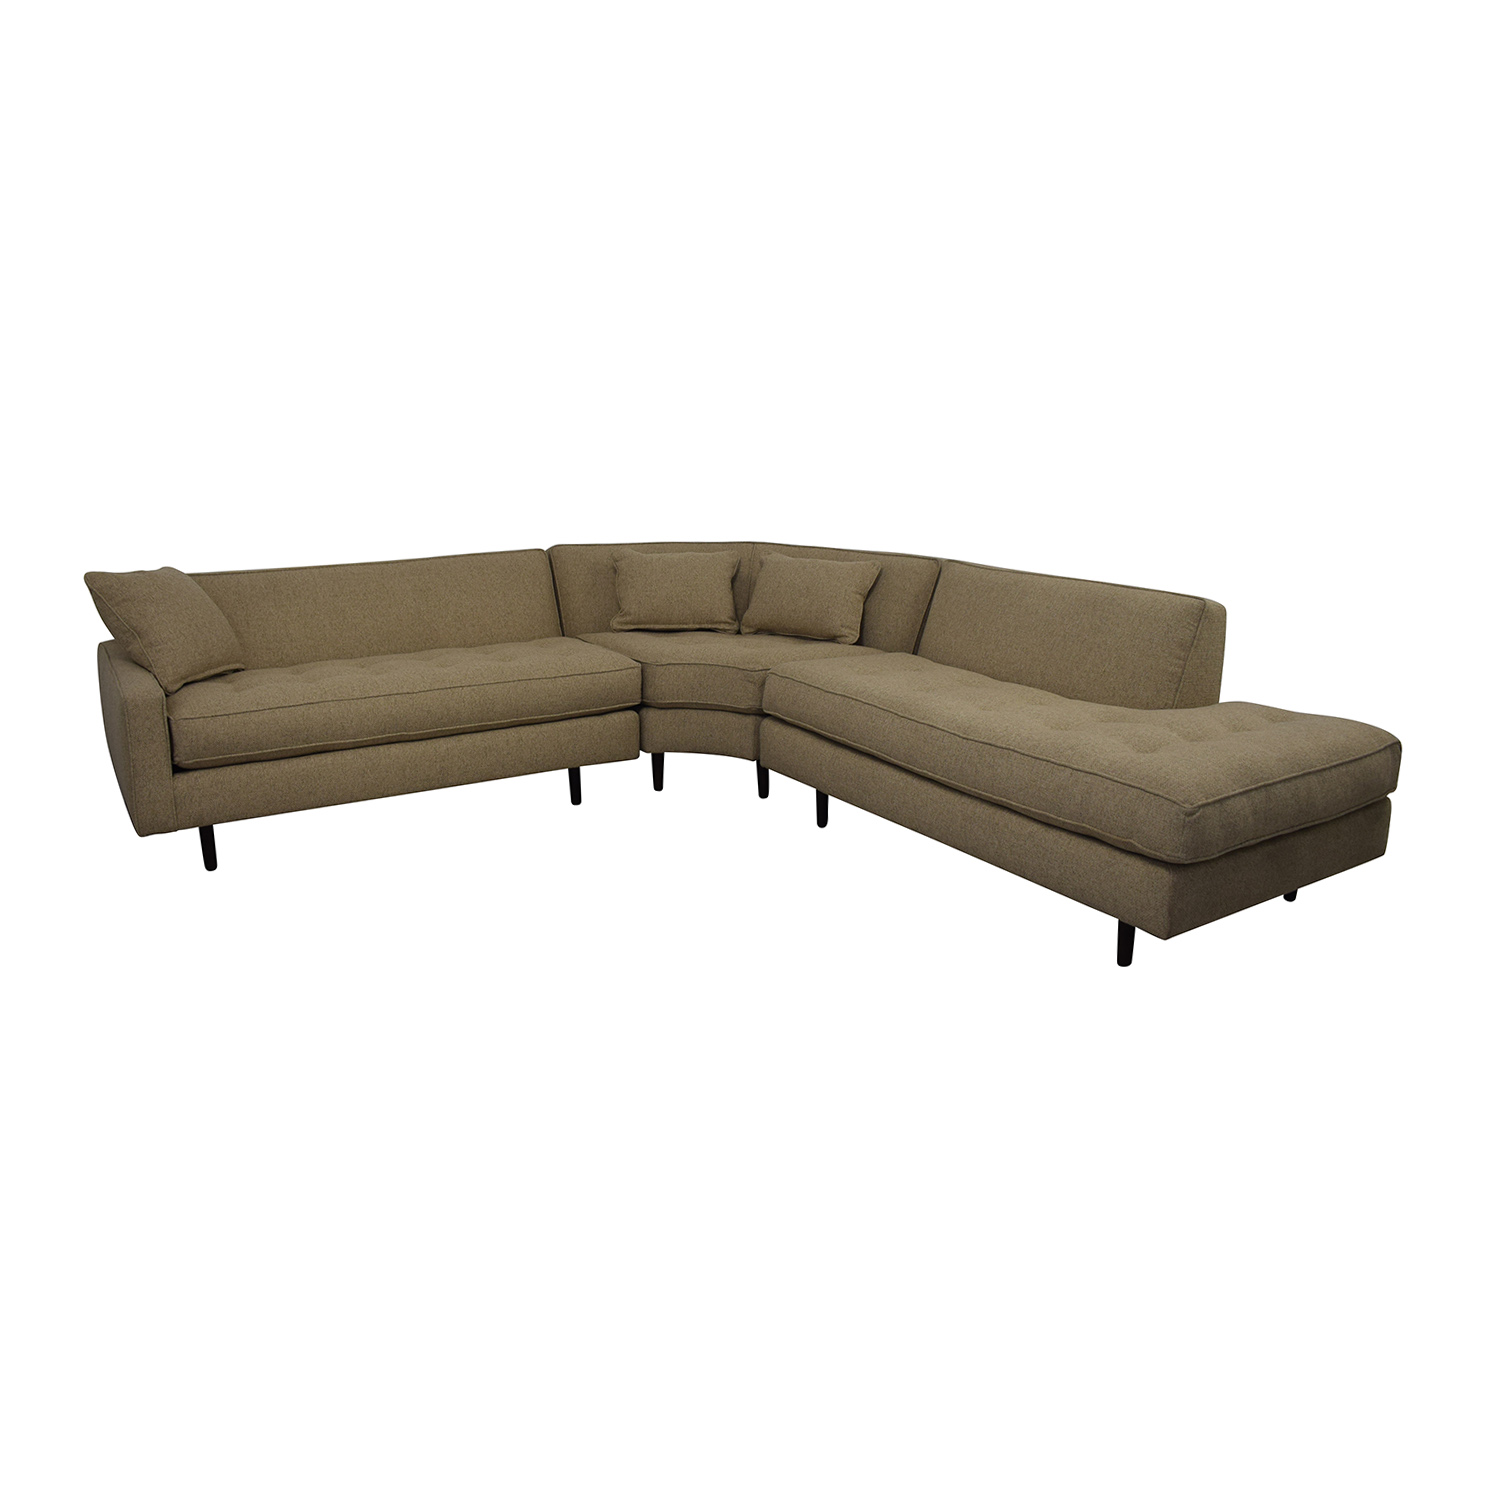 Rowe Furniture Rowe Furniture Brady Sectional Sofa Sectionals